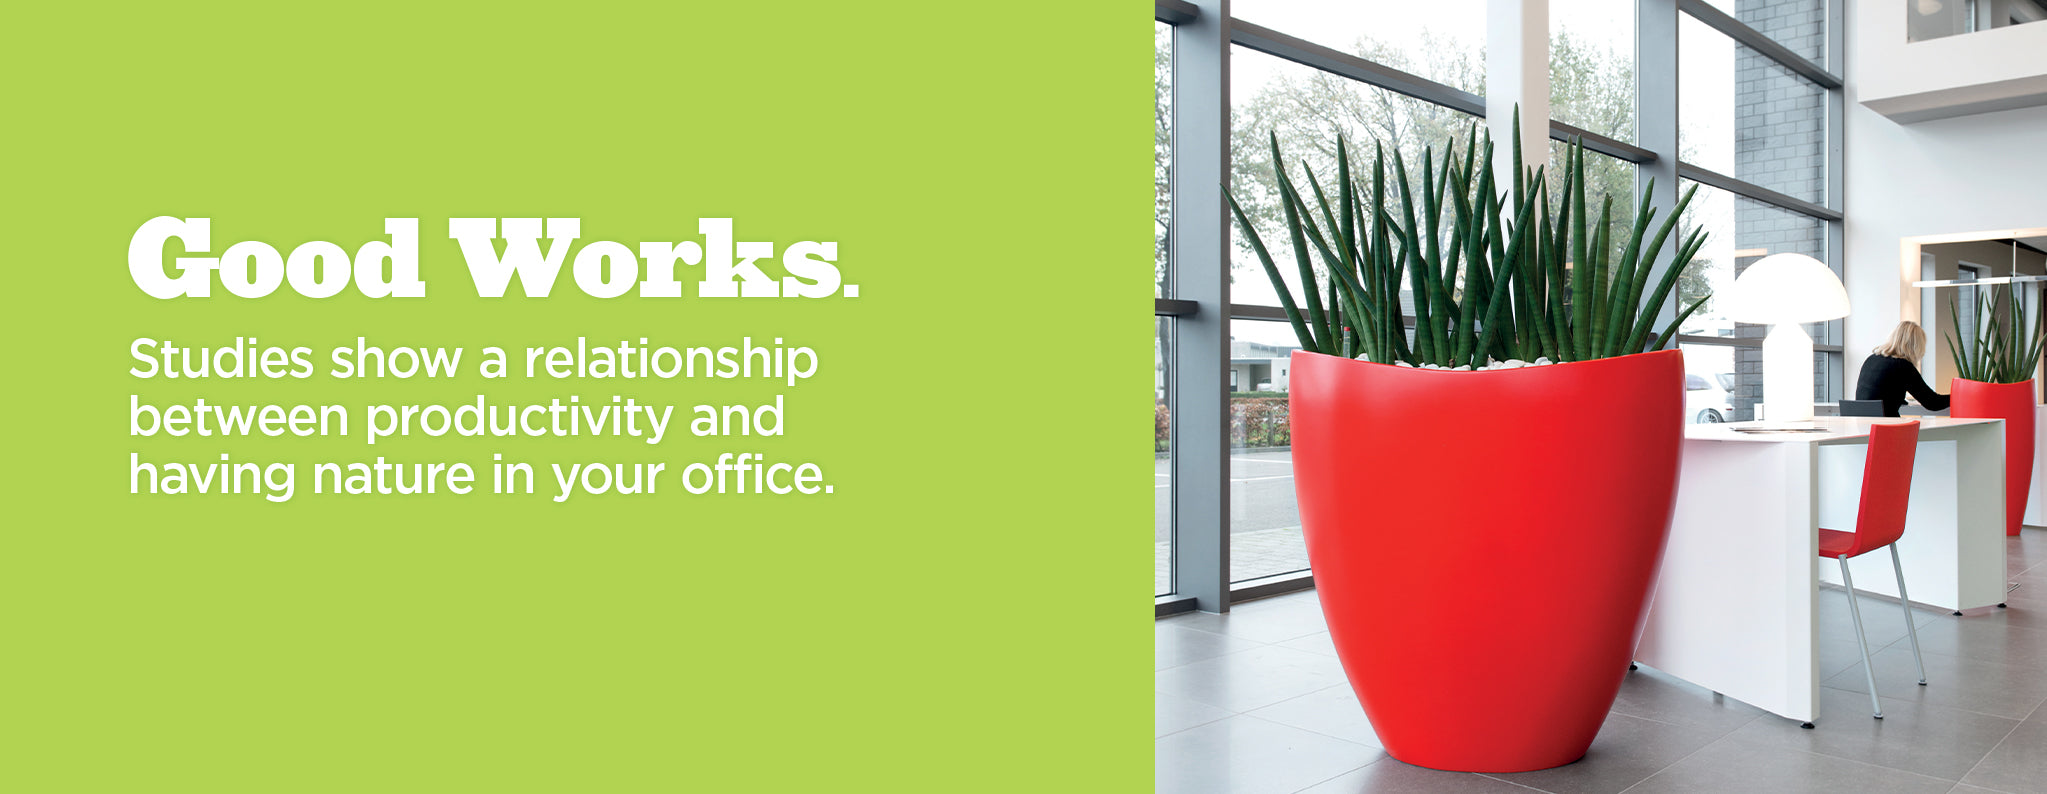 Good Works. Studies show a relationship between productivity and having nature in your office. Ovation Planter